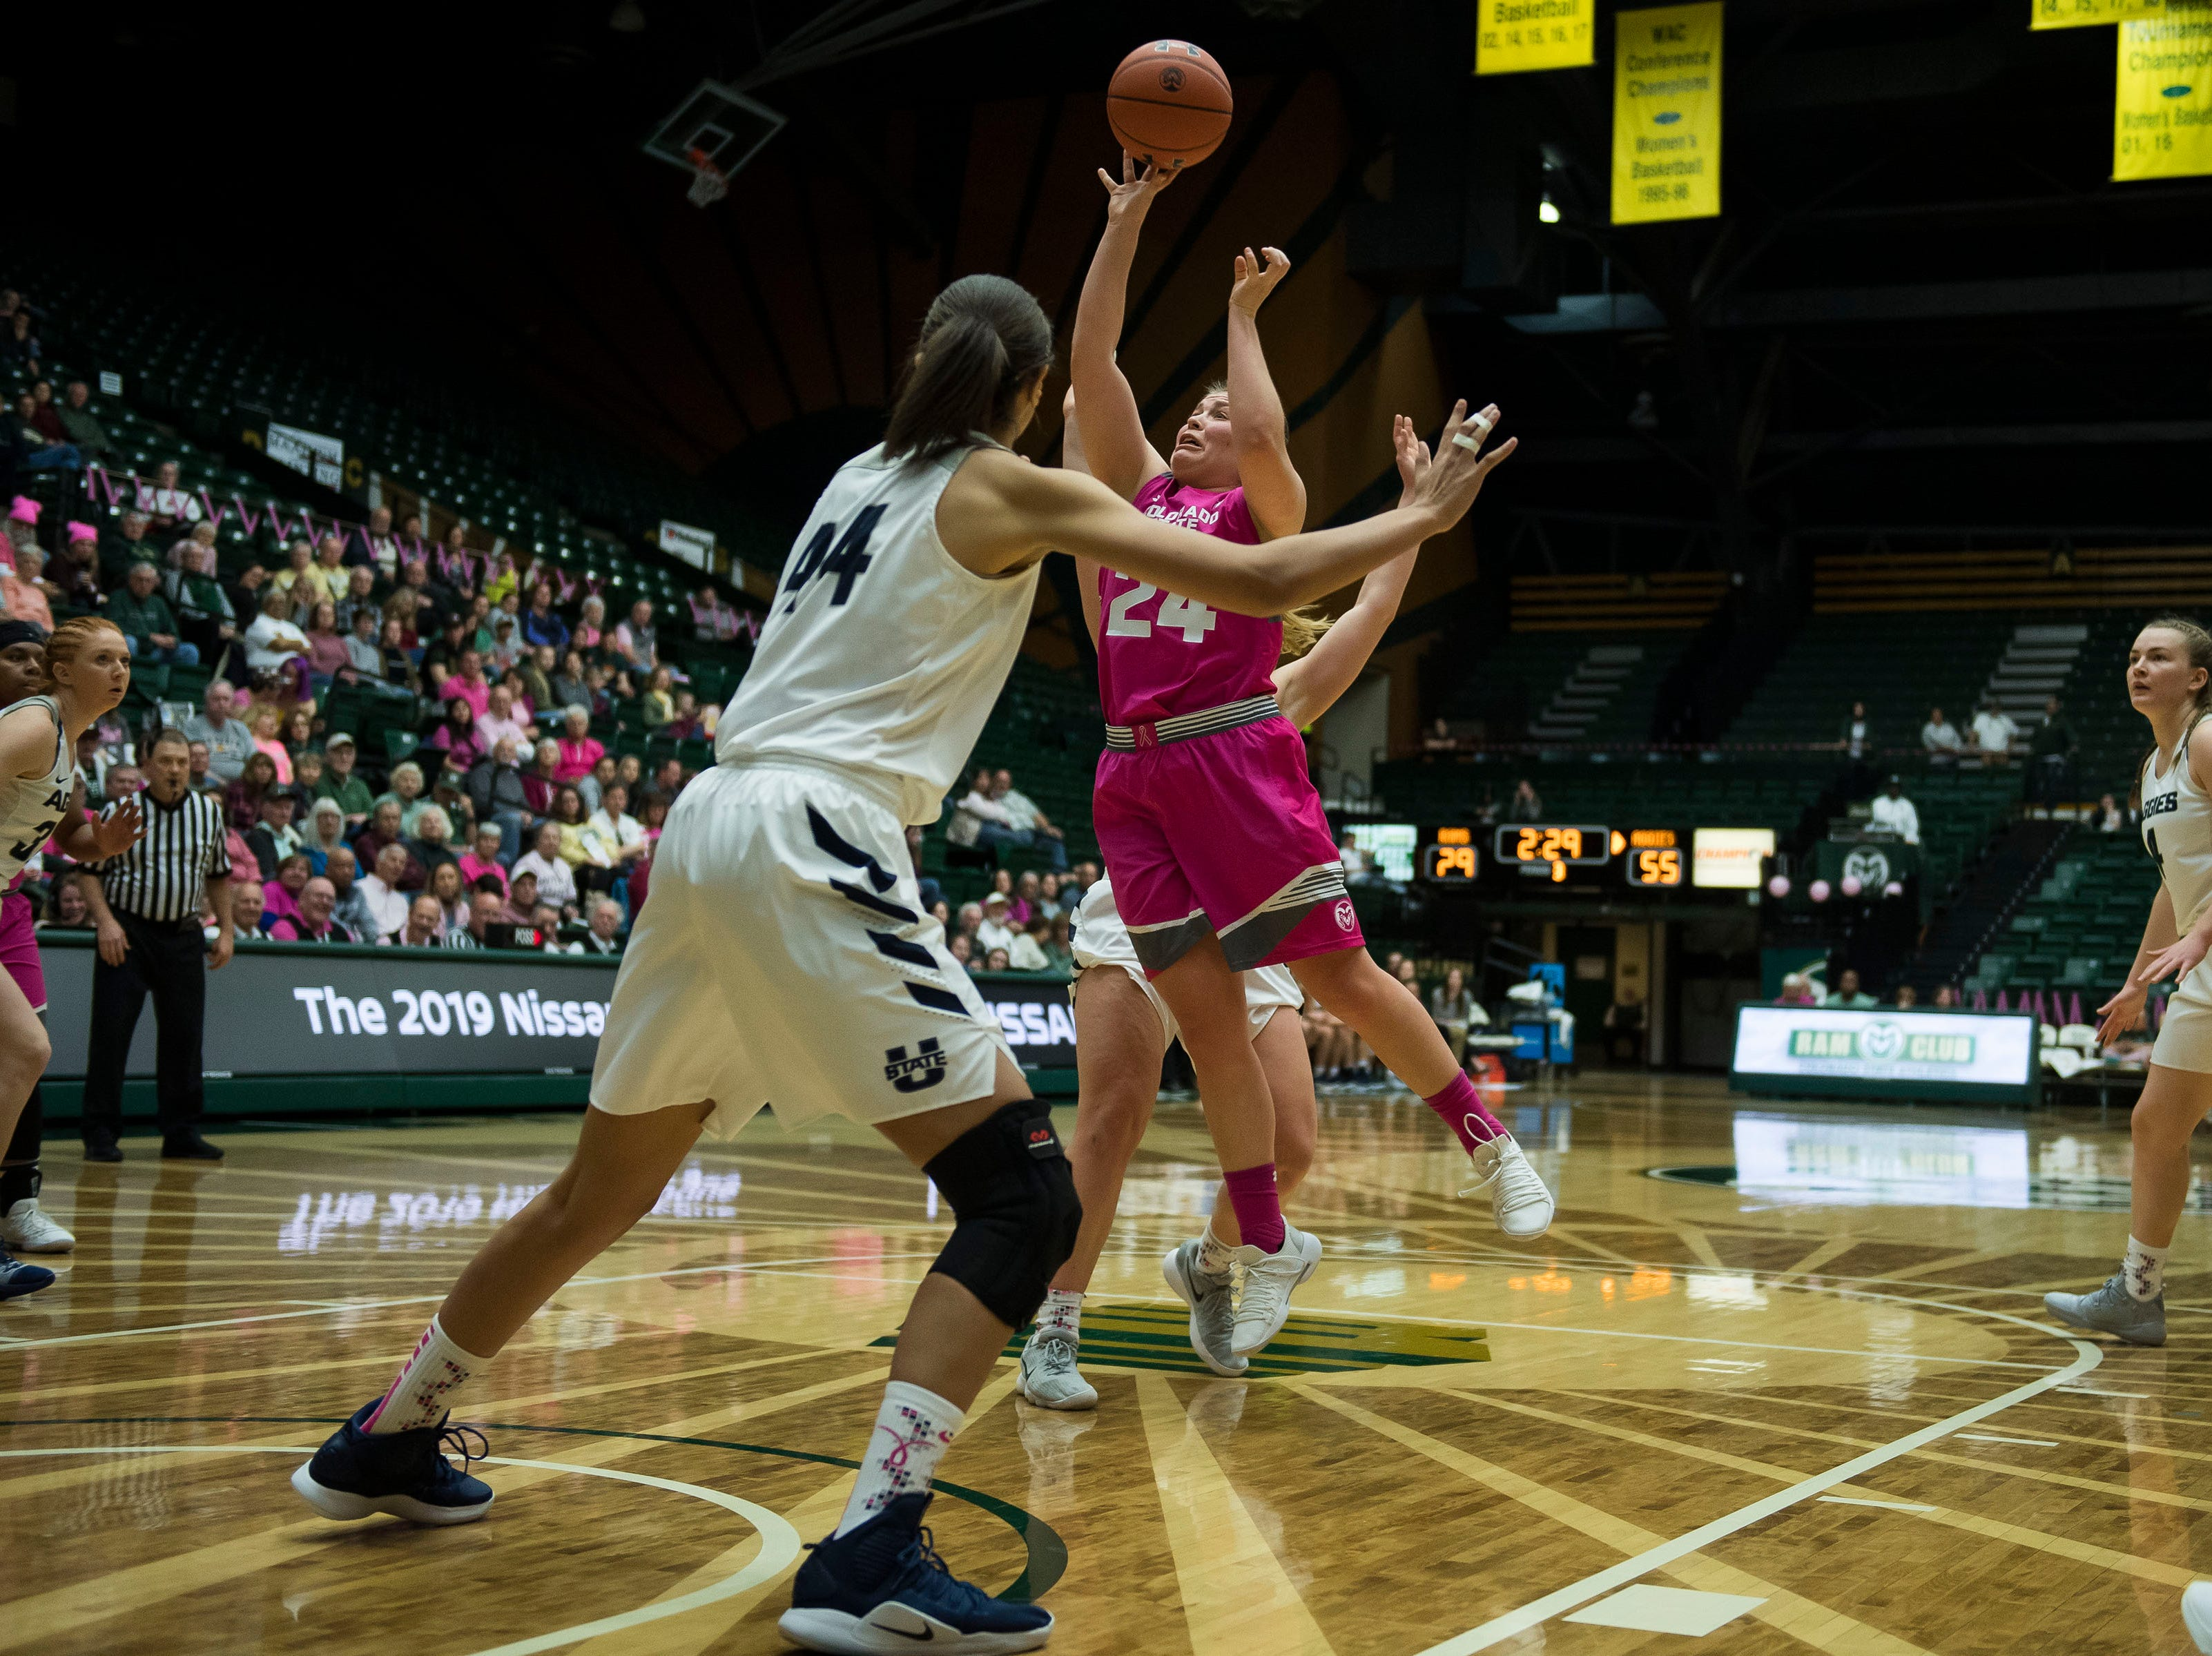 Colorado State University junior guard Mollie Mounsey (24) goes up for a layup during a game against Utah State on Saturday, Jan. 19, 2019, at Moby Arena in Fort Collins, Colo.